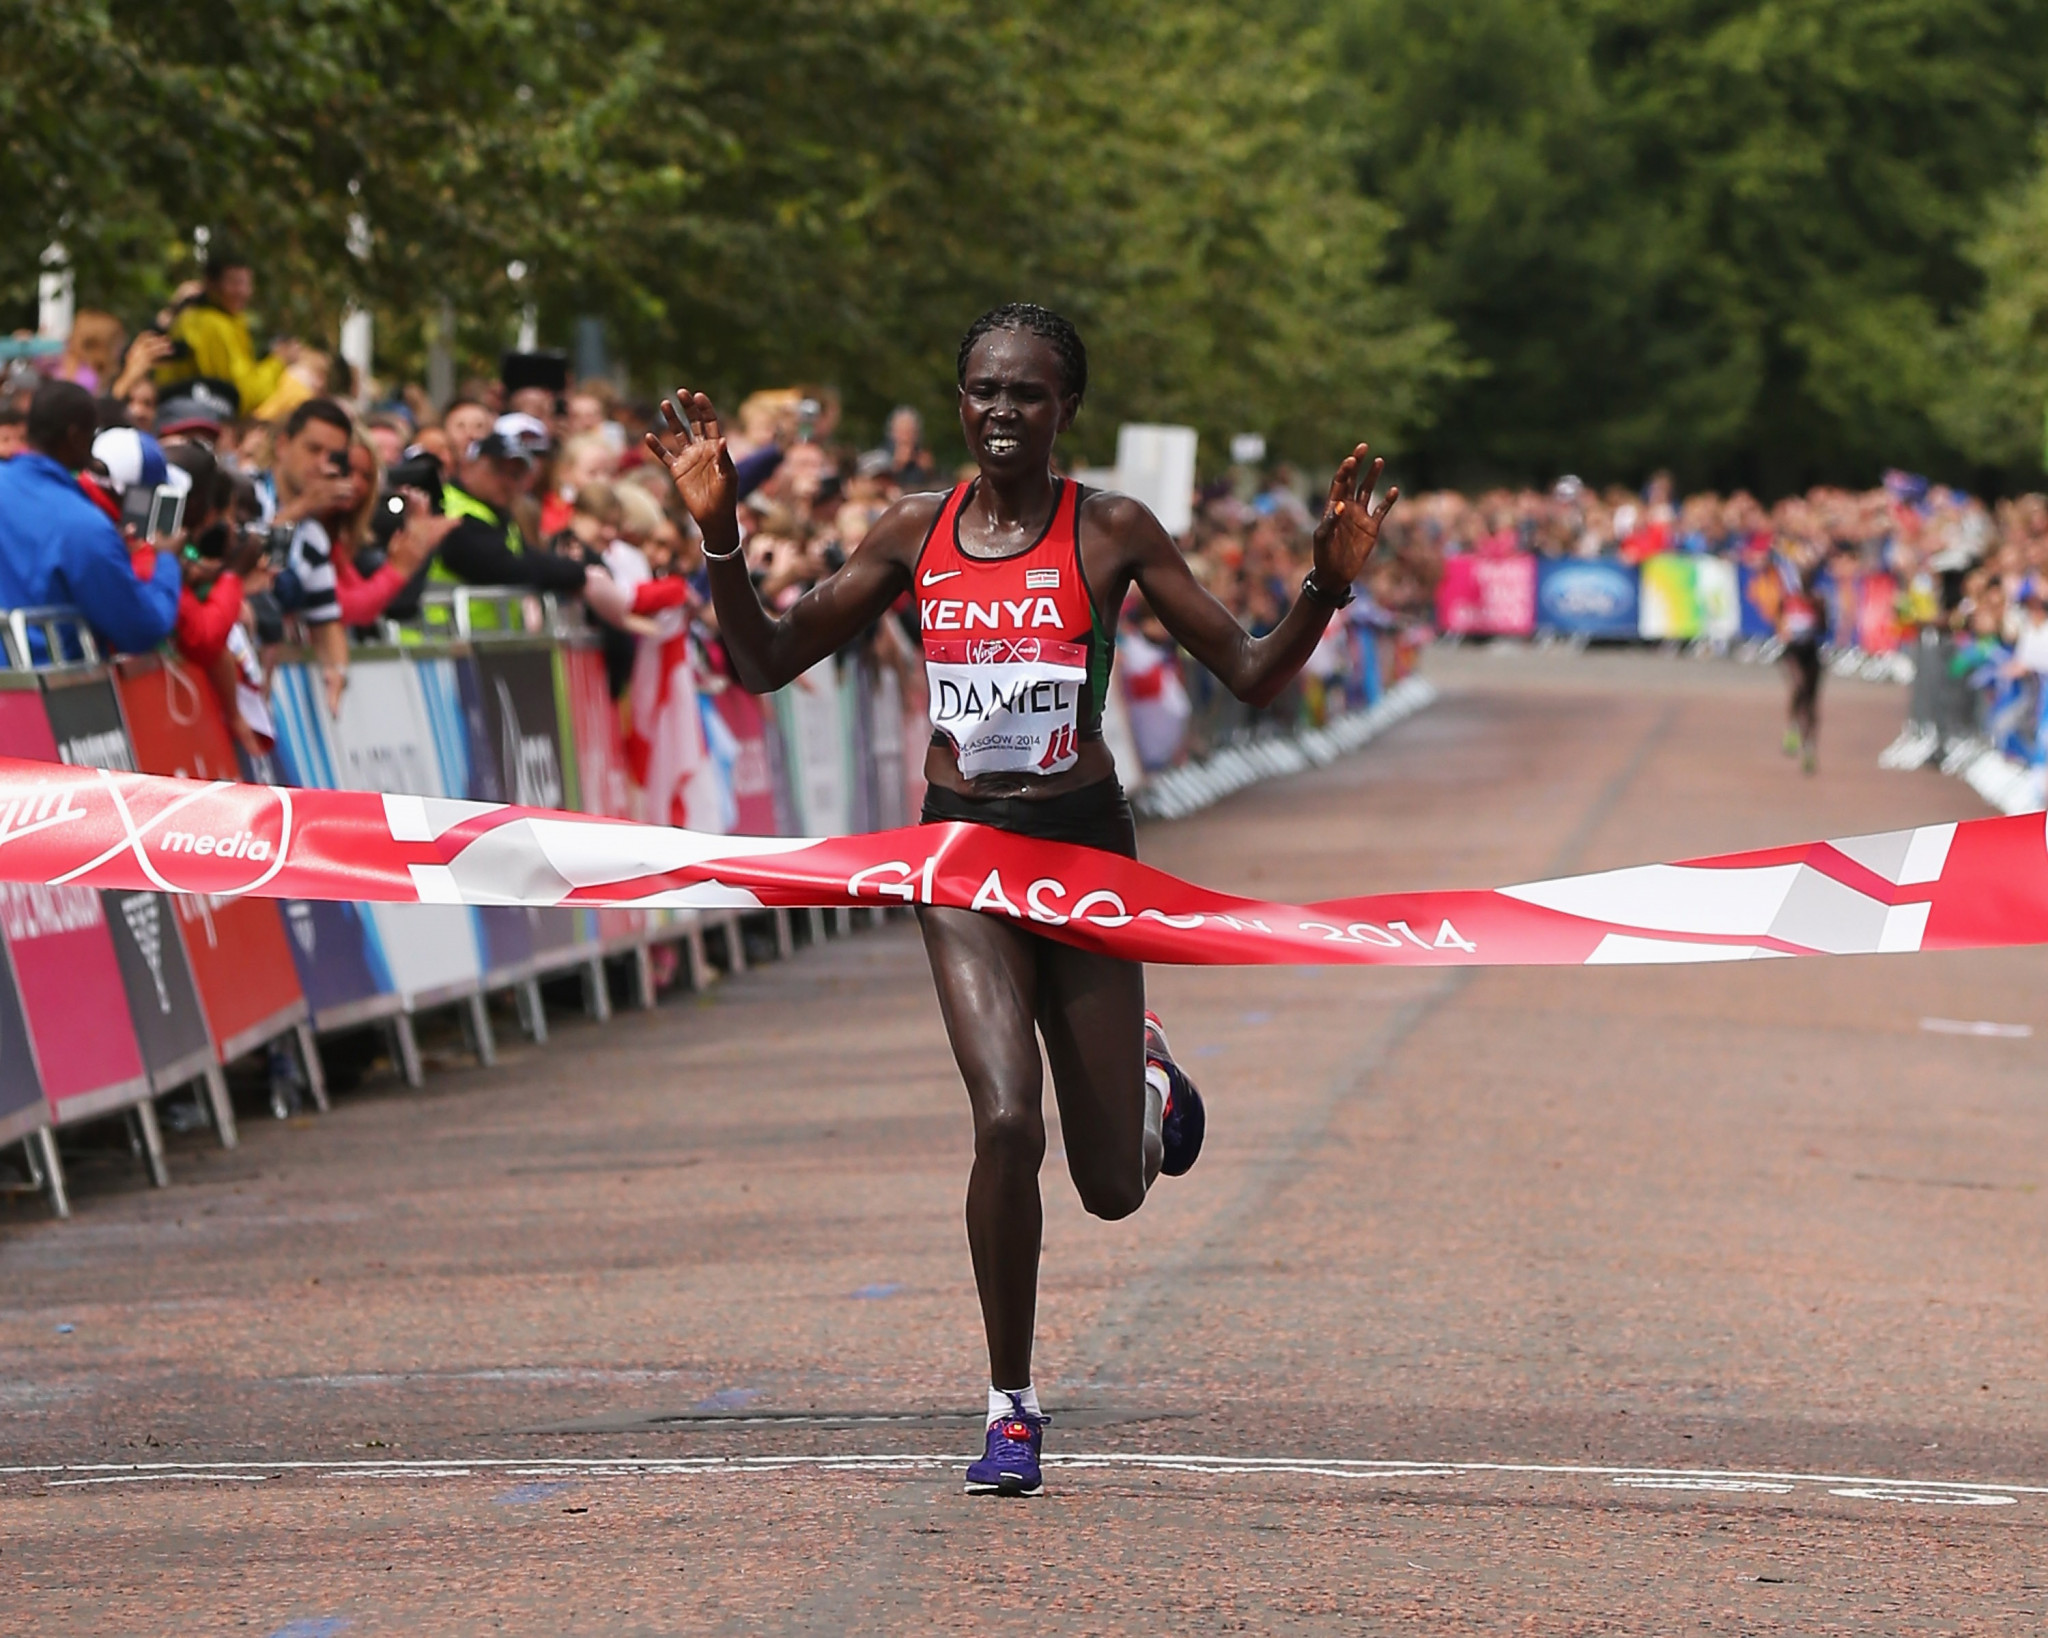 Flomena Cheyech Daniel was among Kenya's gold medallists at the Glasgow 2014 Commonwealth Games, winning the women's marathon ©Getty Images